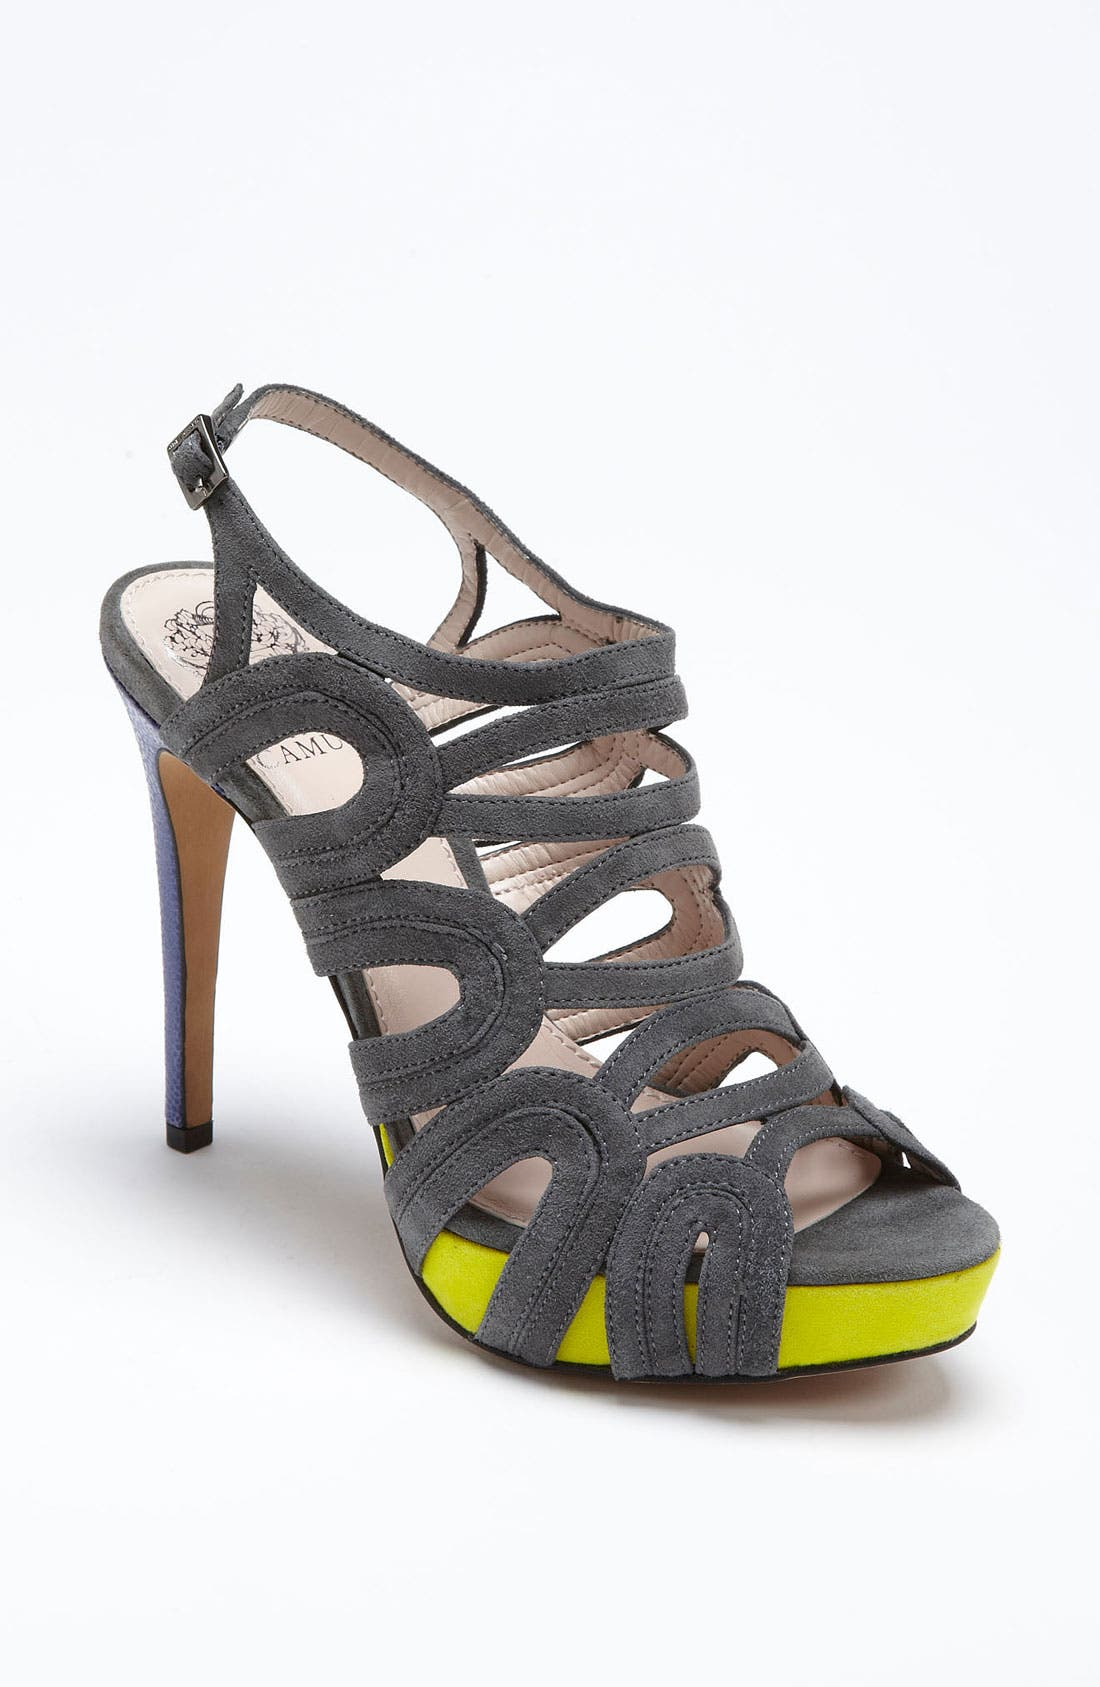 Alternate Image 1 Selected - Vince Camuto 'Jiris' Sandal